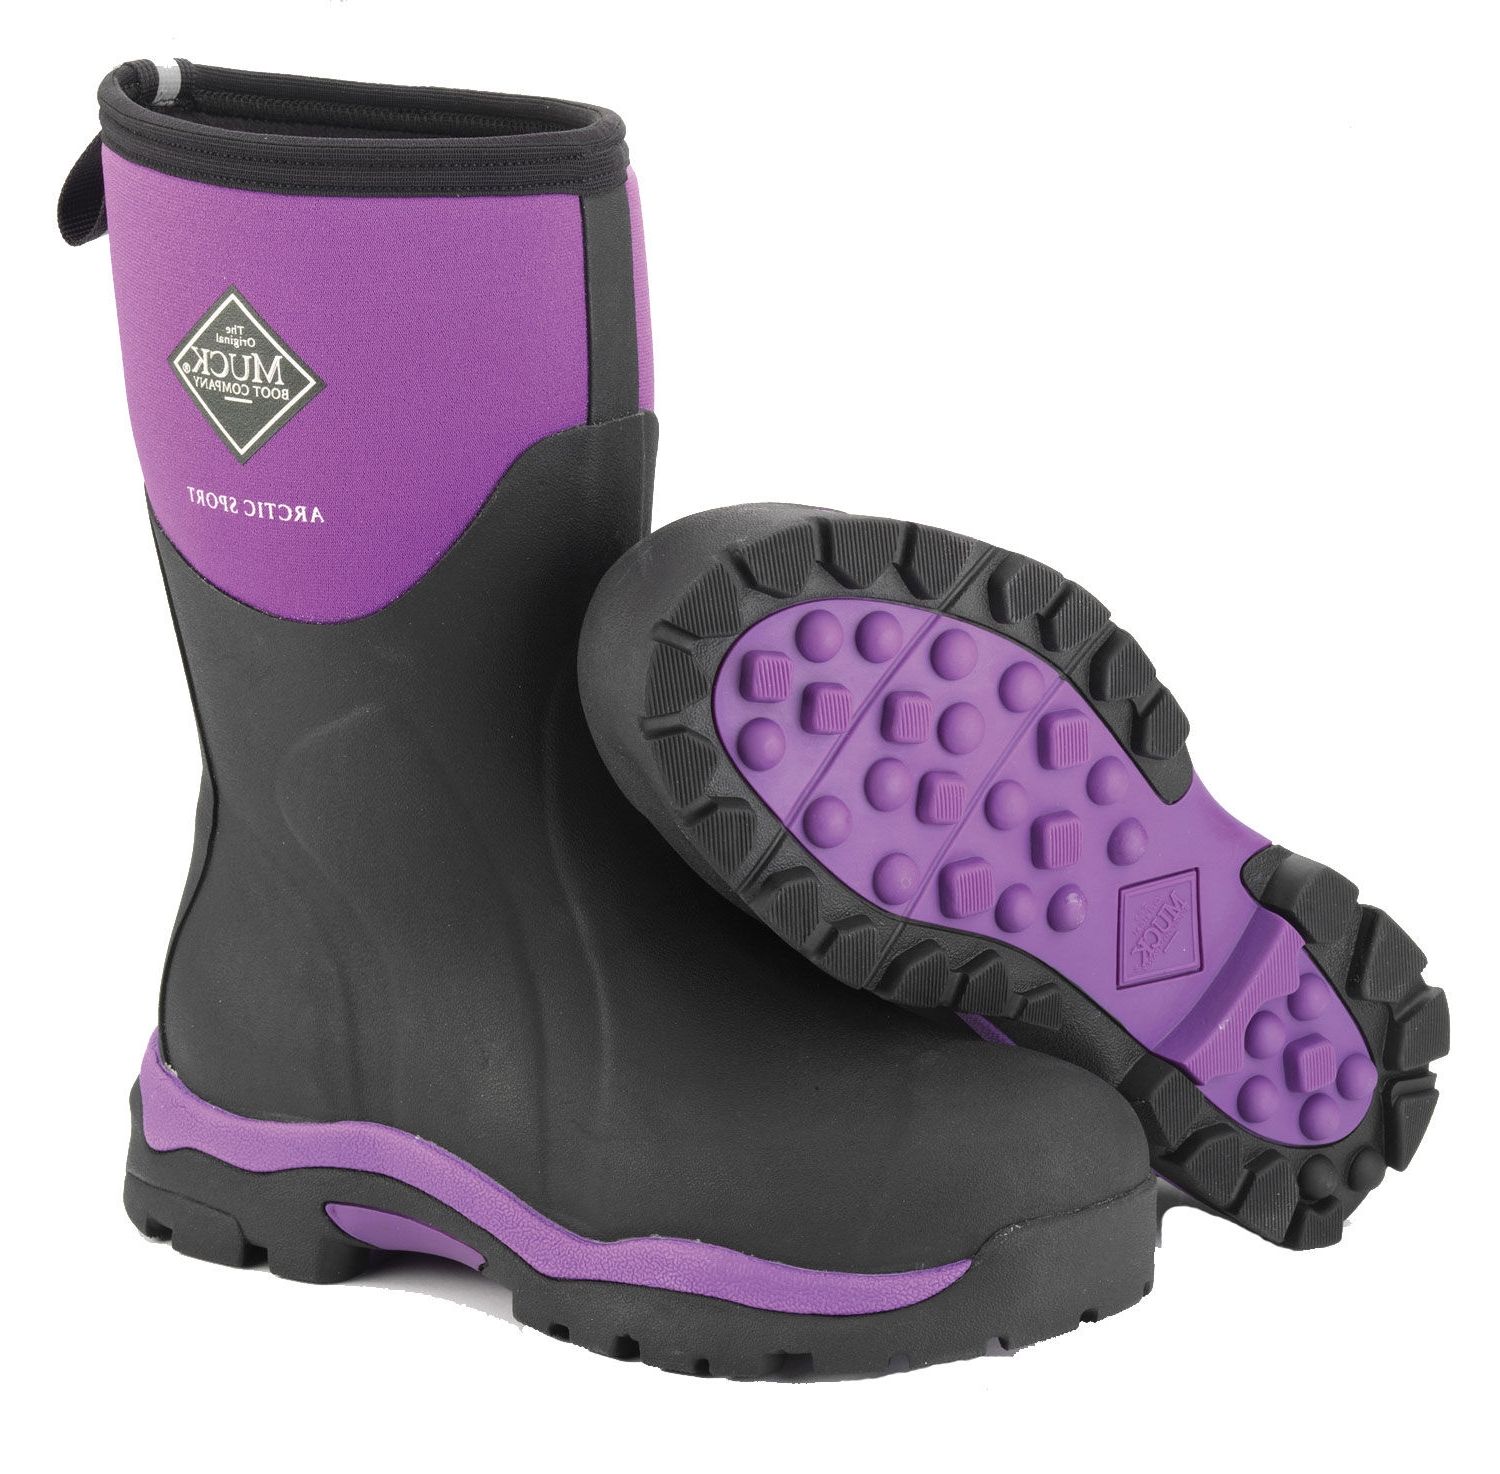 muck boots discount bsrjc boots